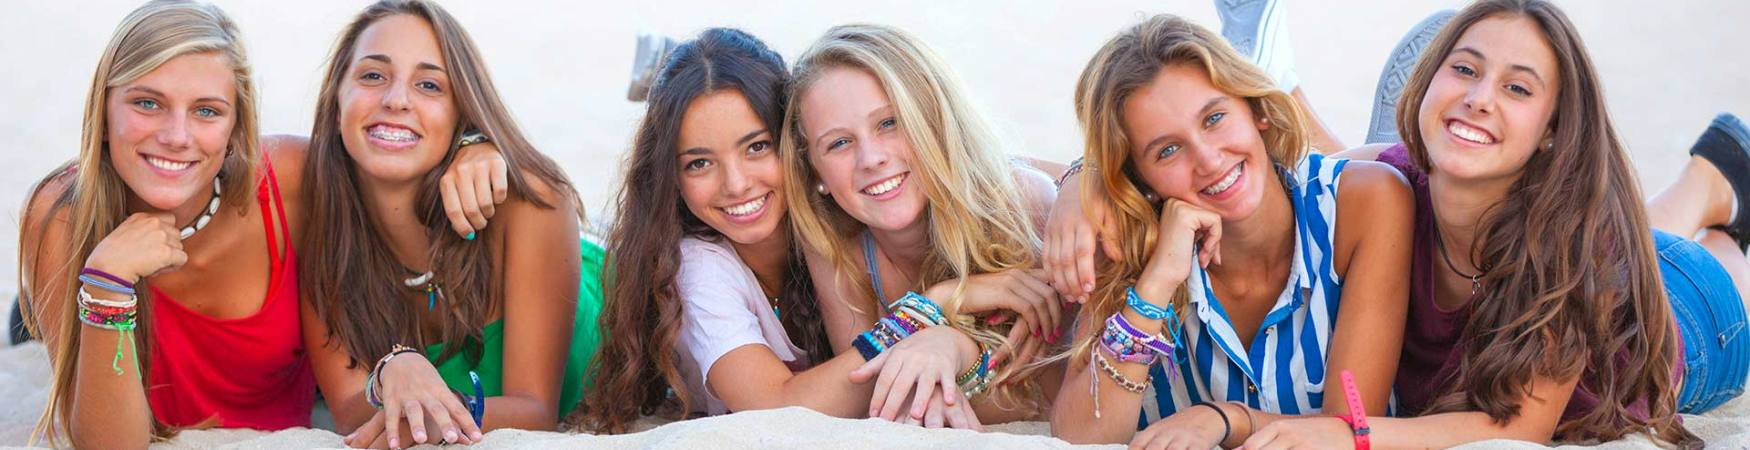 Orthodontics of South Miami reviews | Dentists at 7901 SW 67th Ave - Miami FL